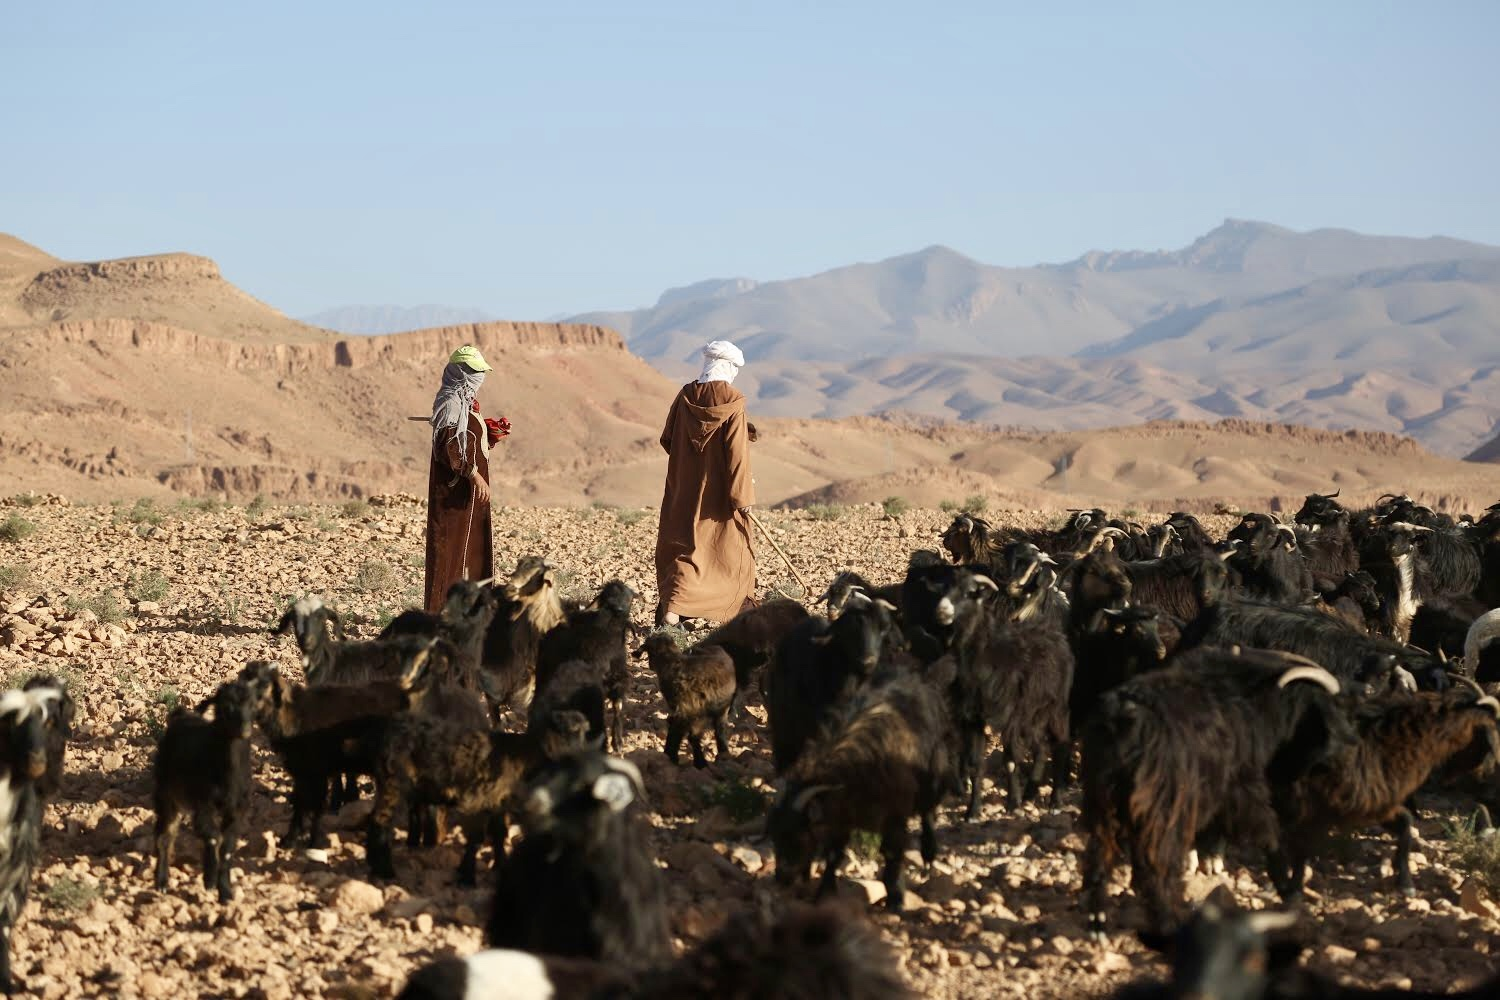 Documentation links between cultural practices and biodiversity | High Atlas Cultural Landscapes